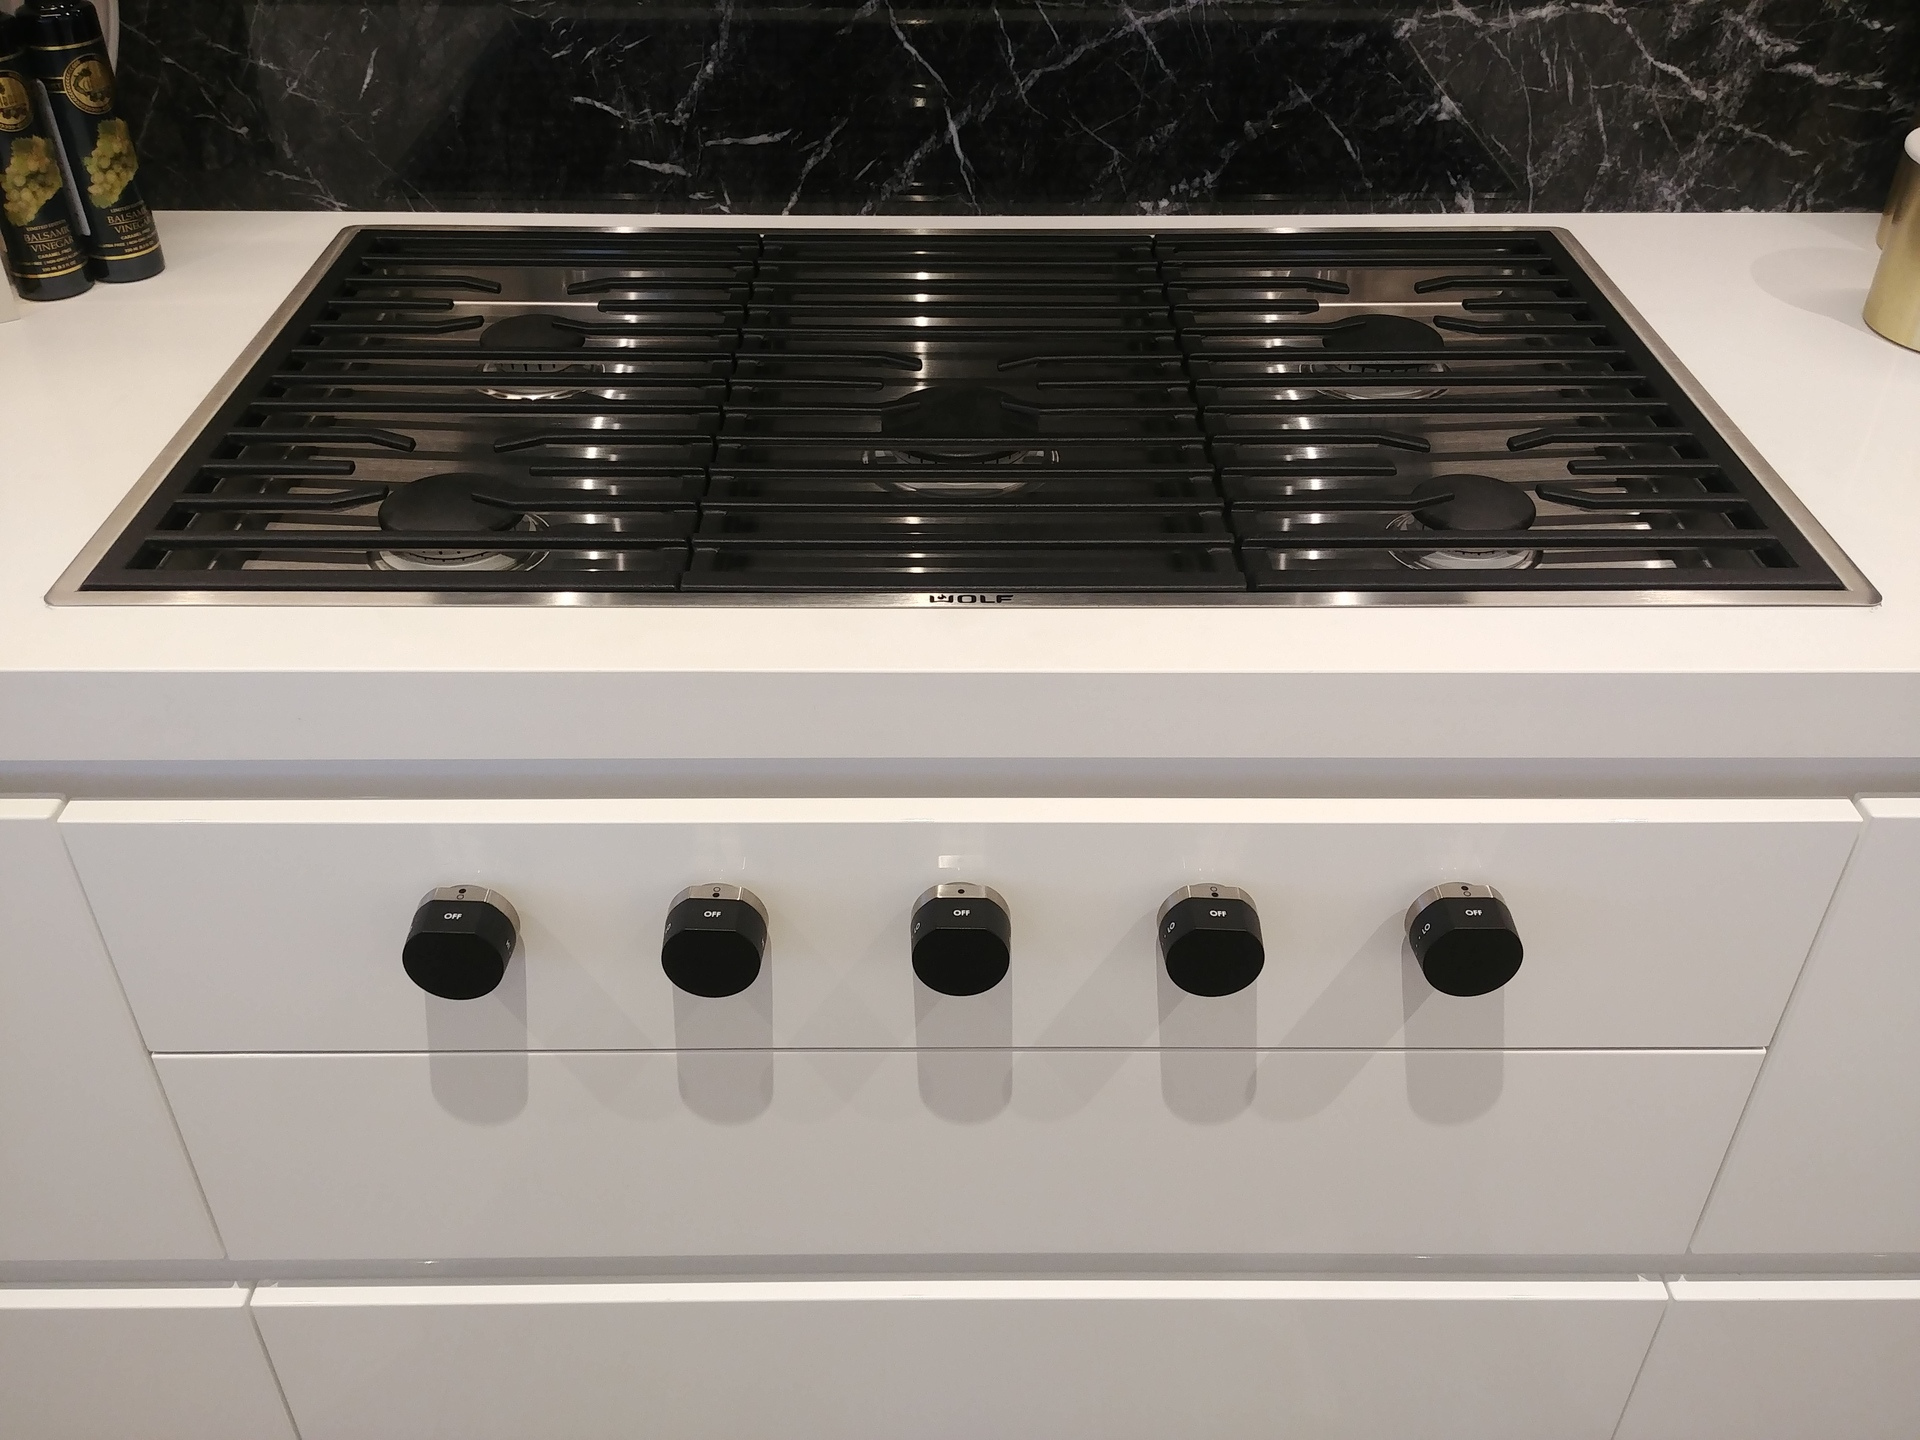 davie-nicola-wolf-36inch-flush-mount-gas-cooktop at Davie and Nicola (1188 Nicola, West End VW, Vancouver West)